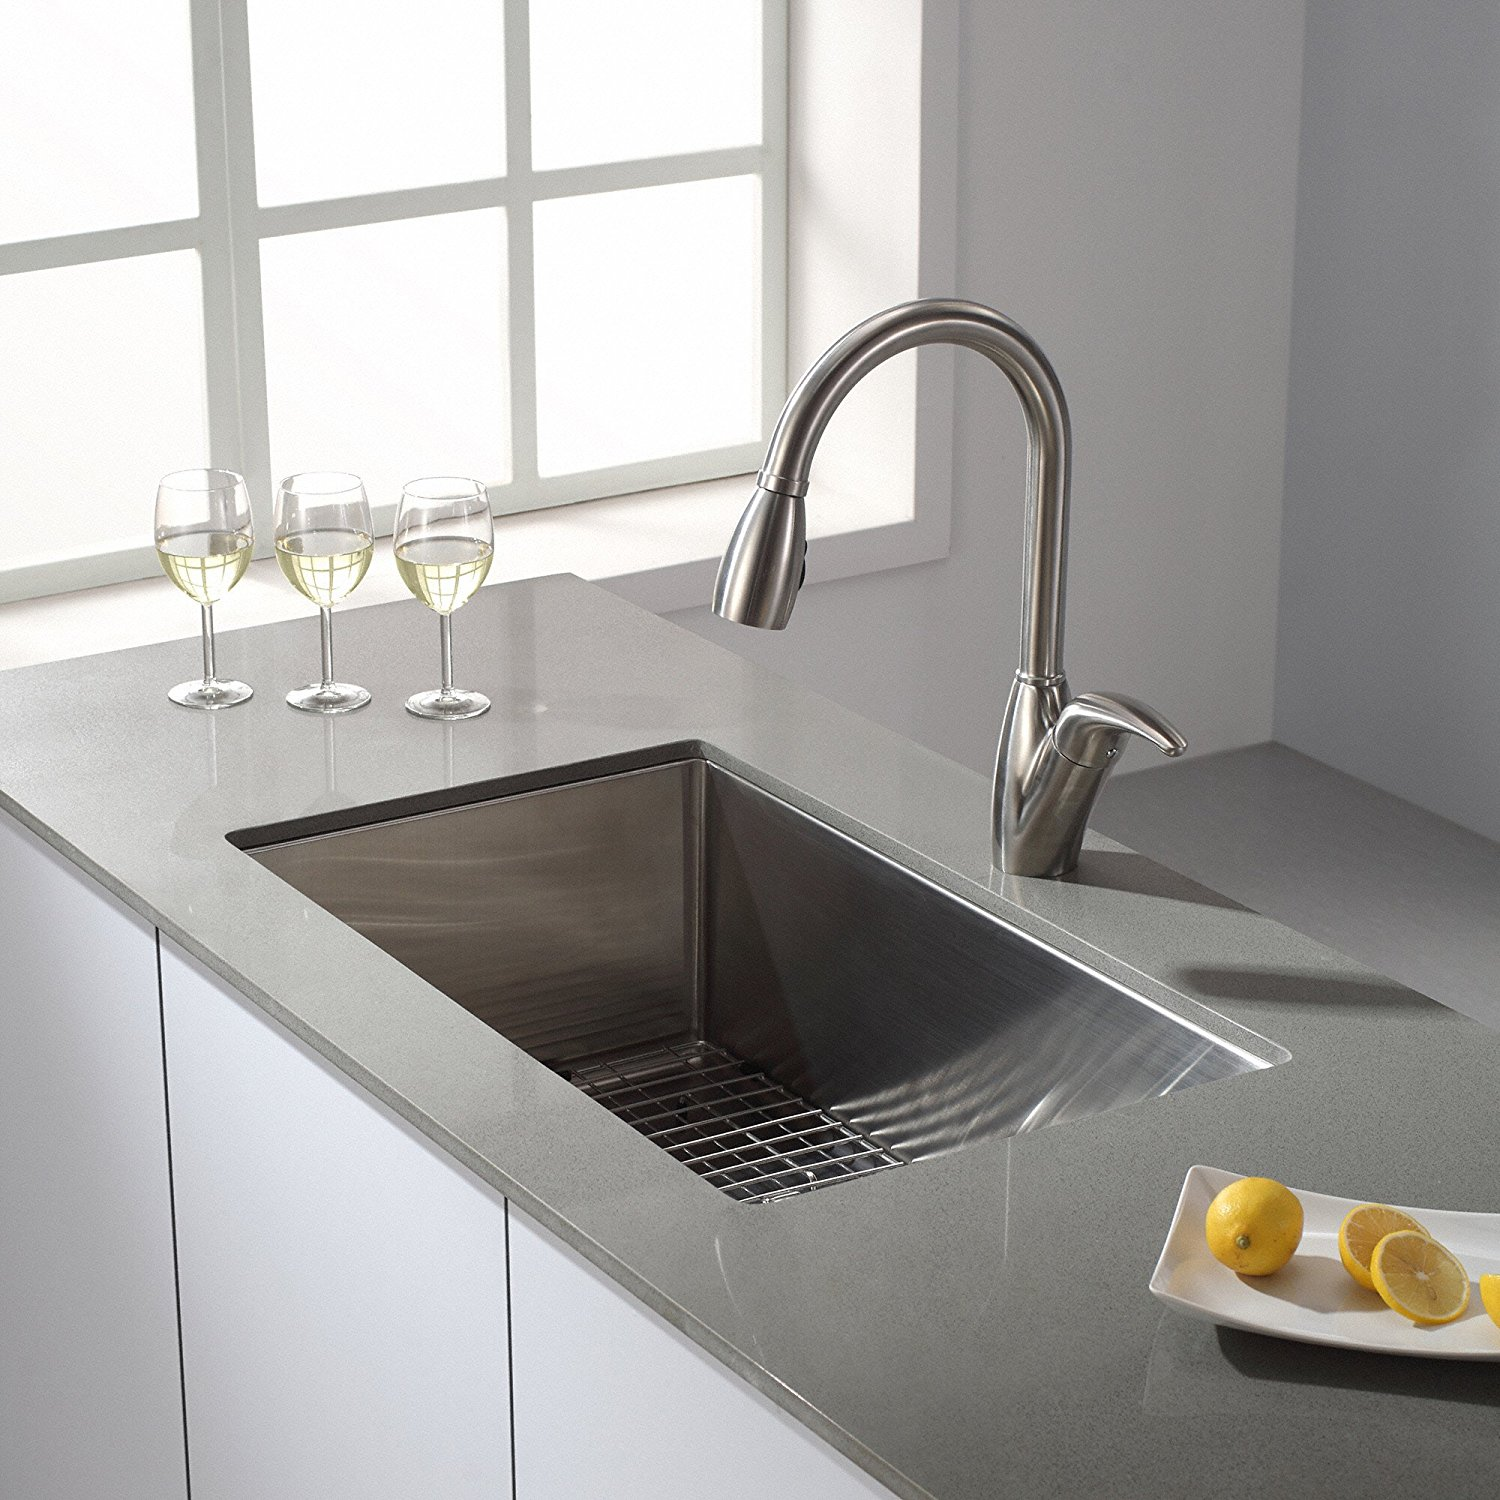 Top 10 Best Single Bowl Kitchen Sinks 2018 Reviews [Editors Pick]